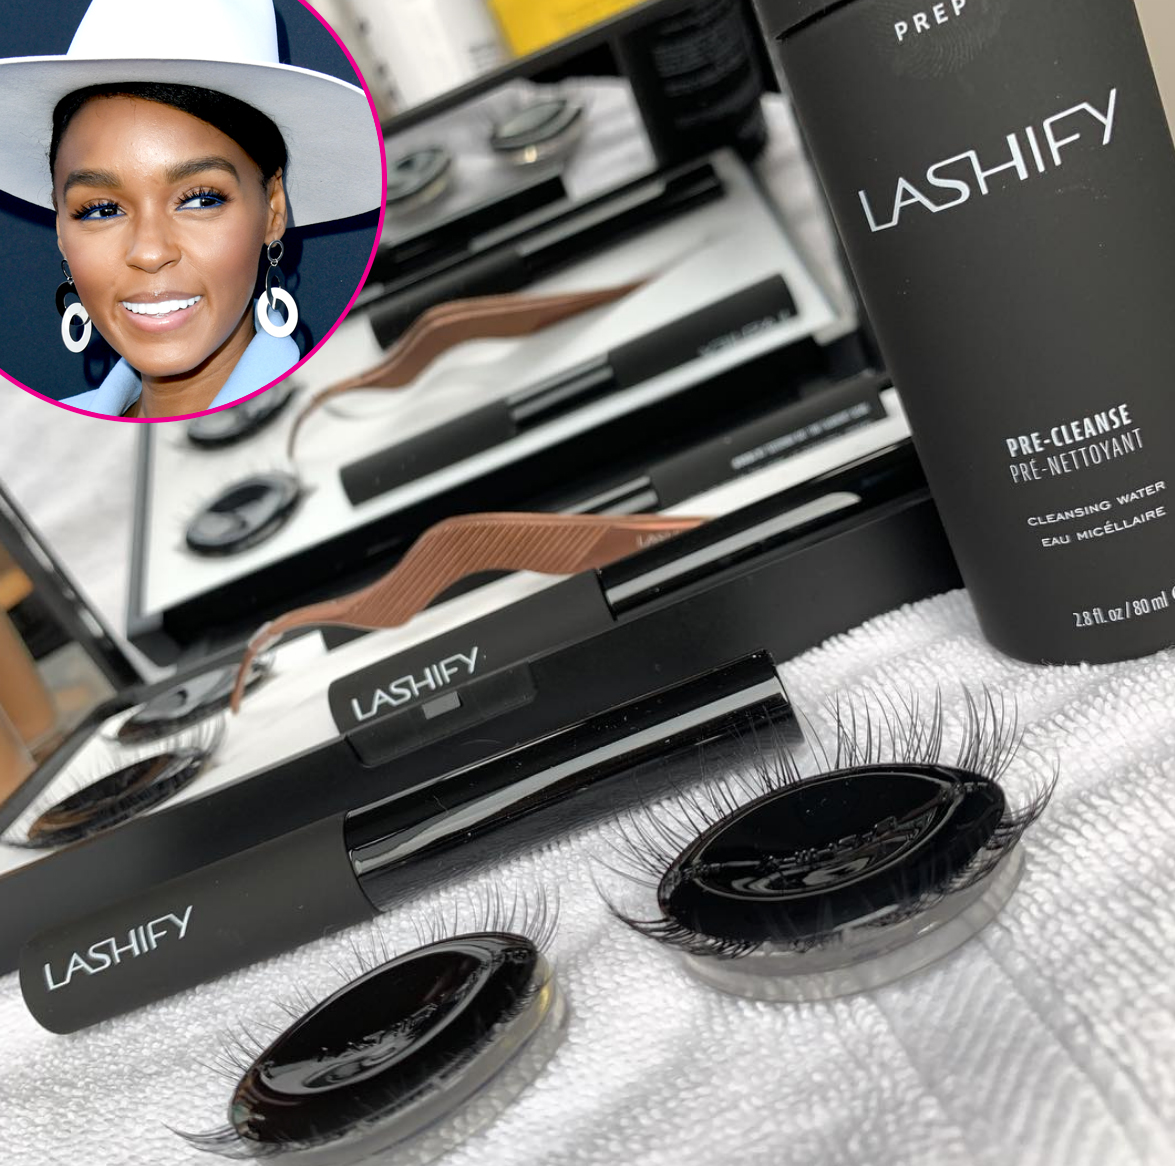 janelle-Monae-grammy-awards-2019 - One element of the songstress' look: Lashify lashes, according to her makeup artist Jessica Smalls.